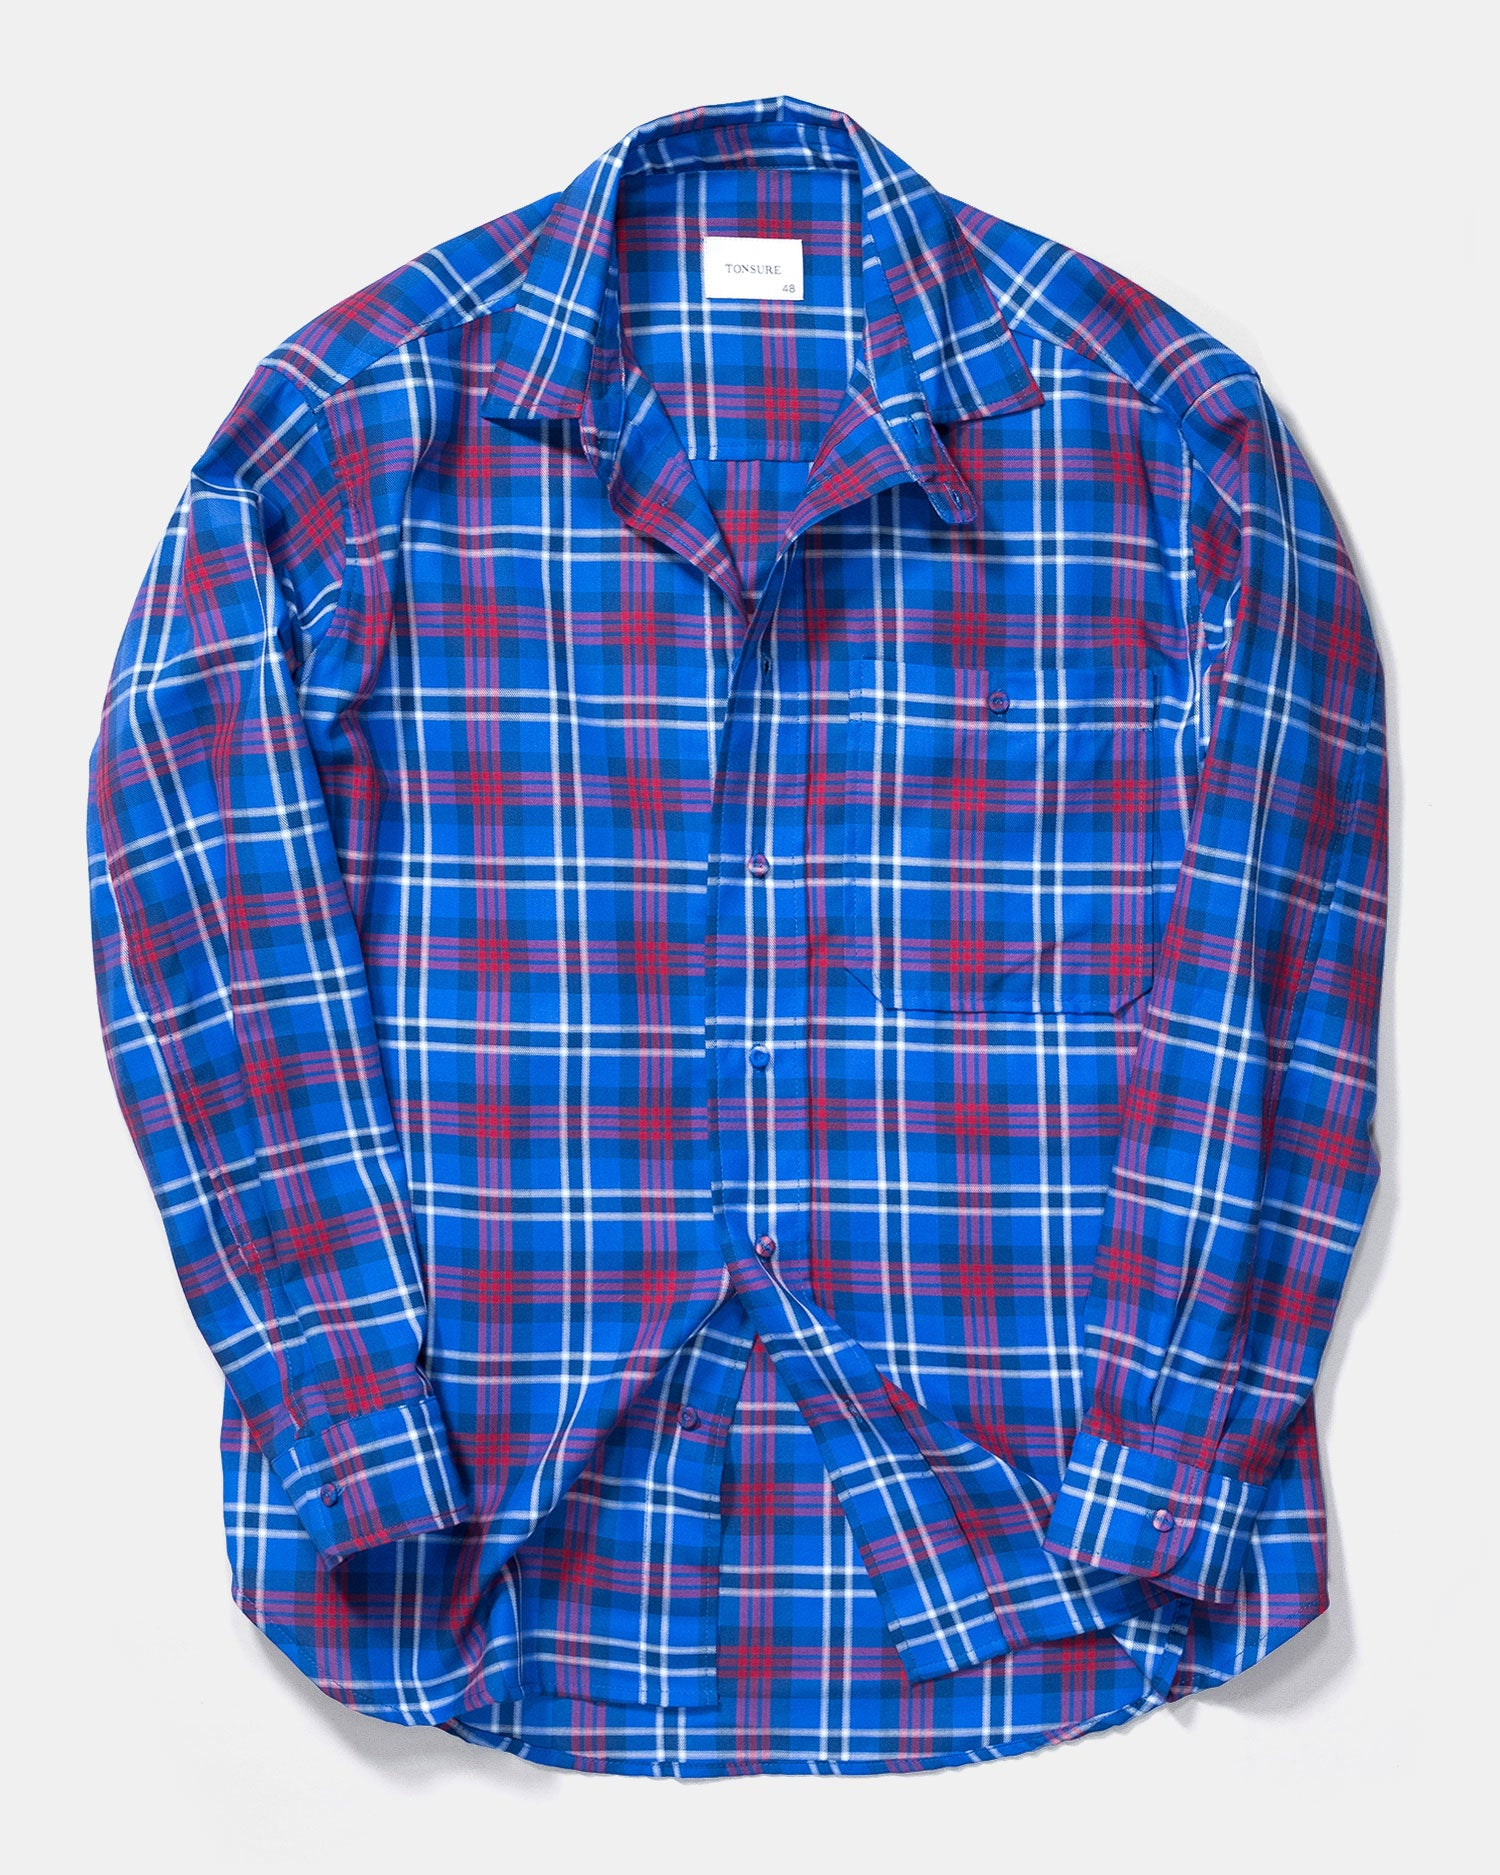 Tonsure Ron Oversized Check Shirt